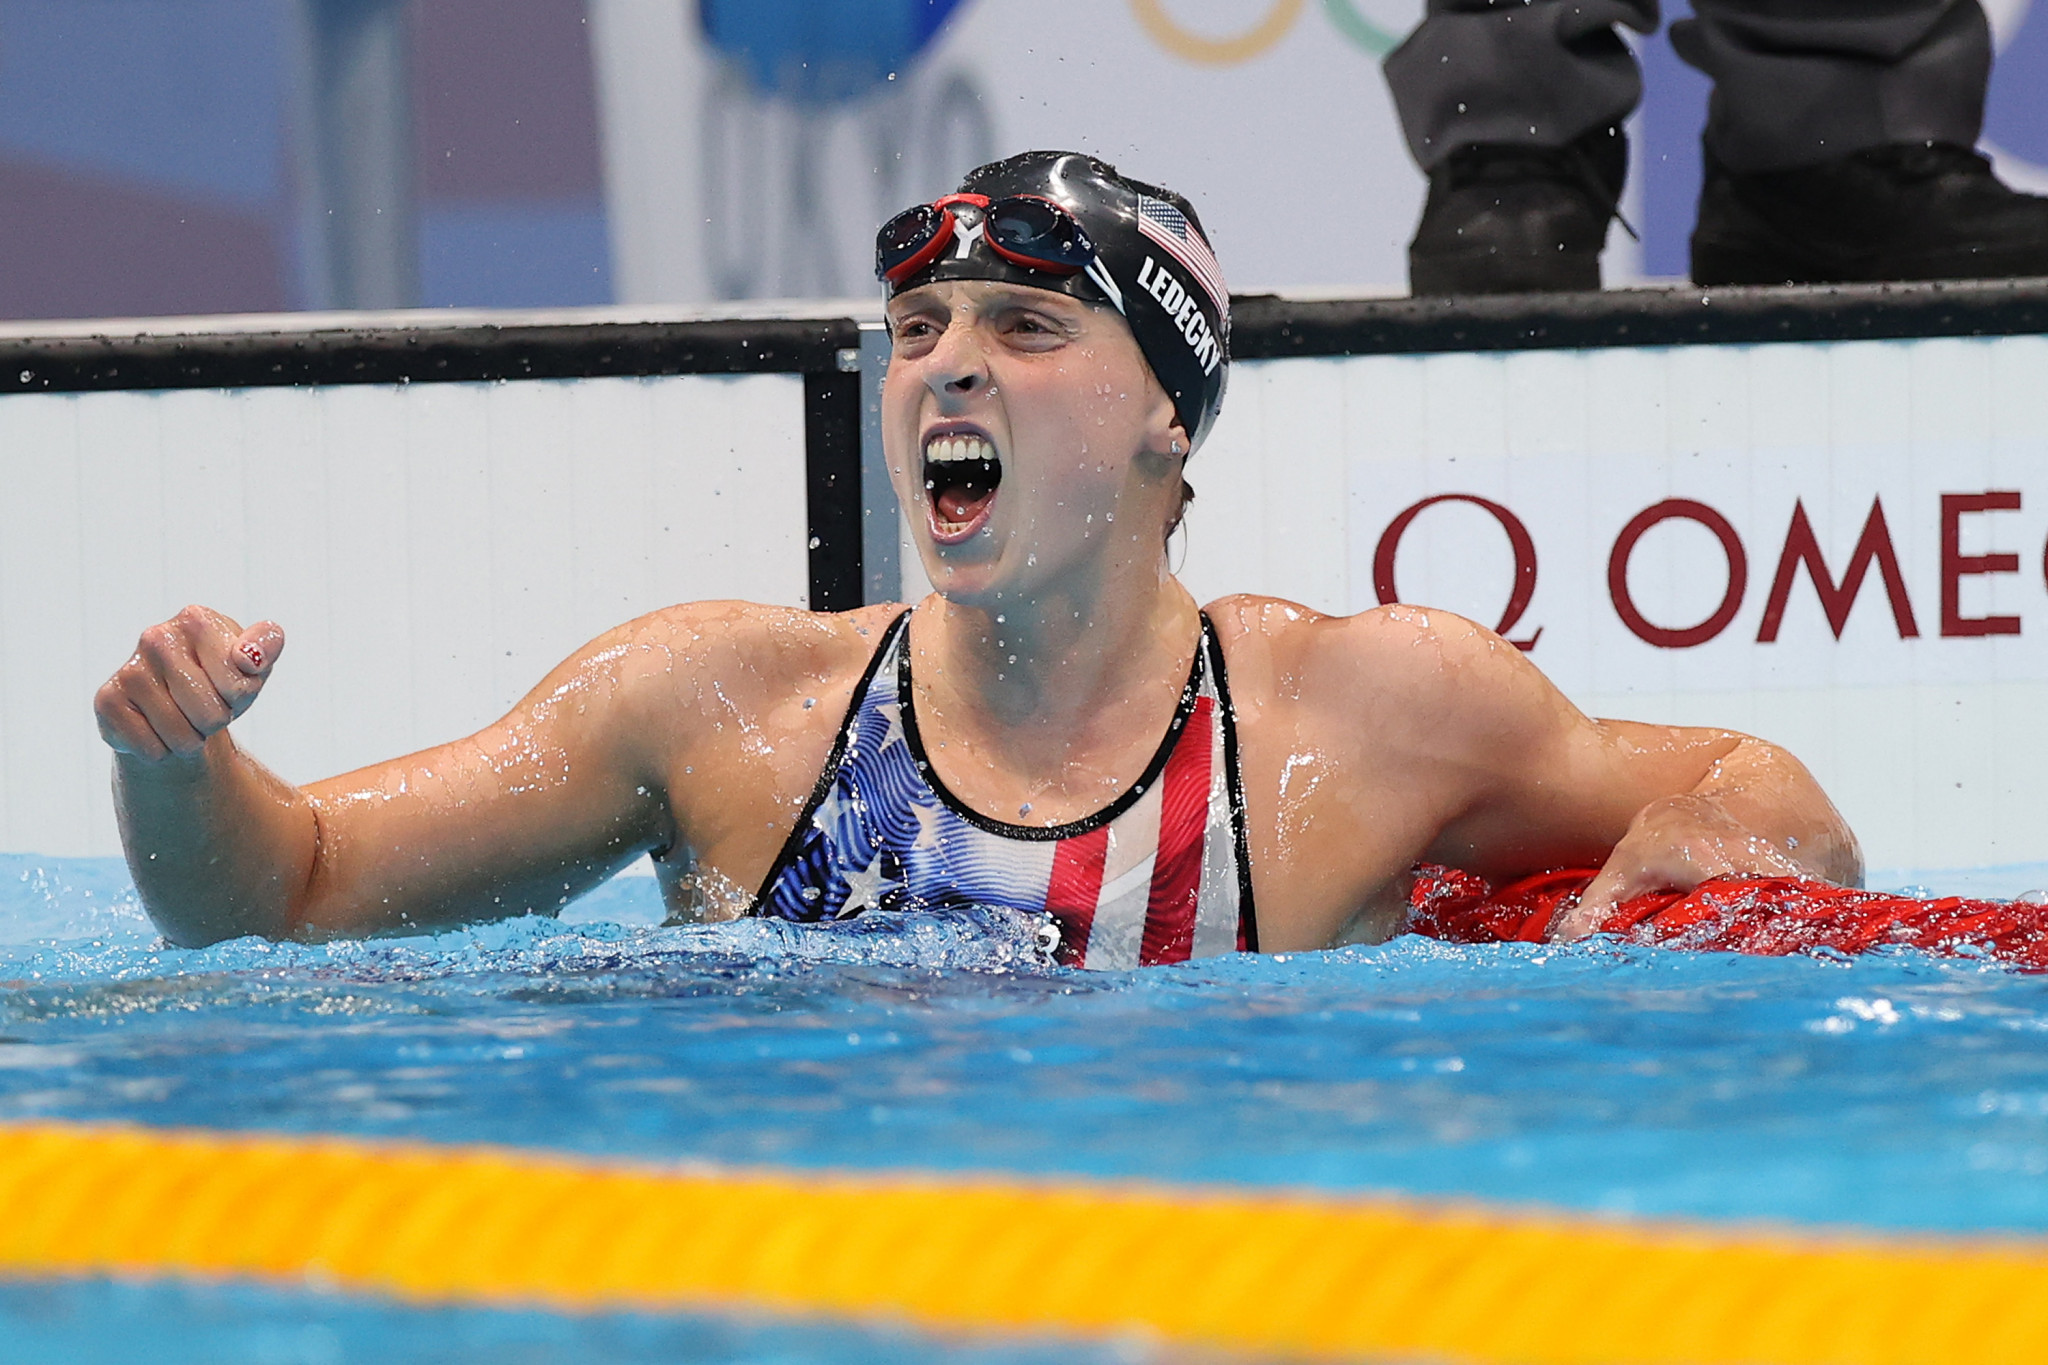 Katie Ledecky won the first Olympic final in the women's 1500m freestyle to win her sixth gold medal ©Getty Images